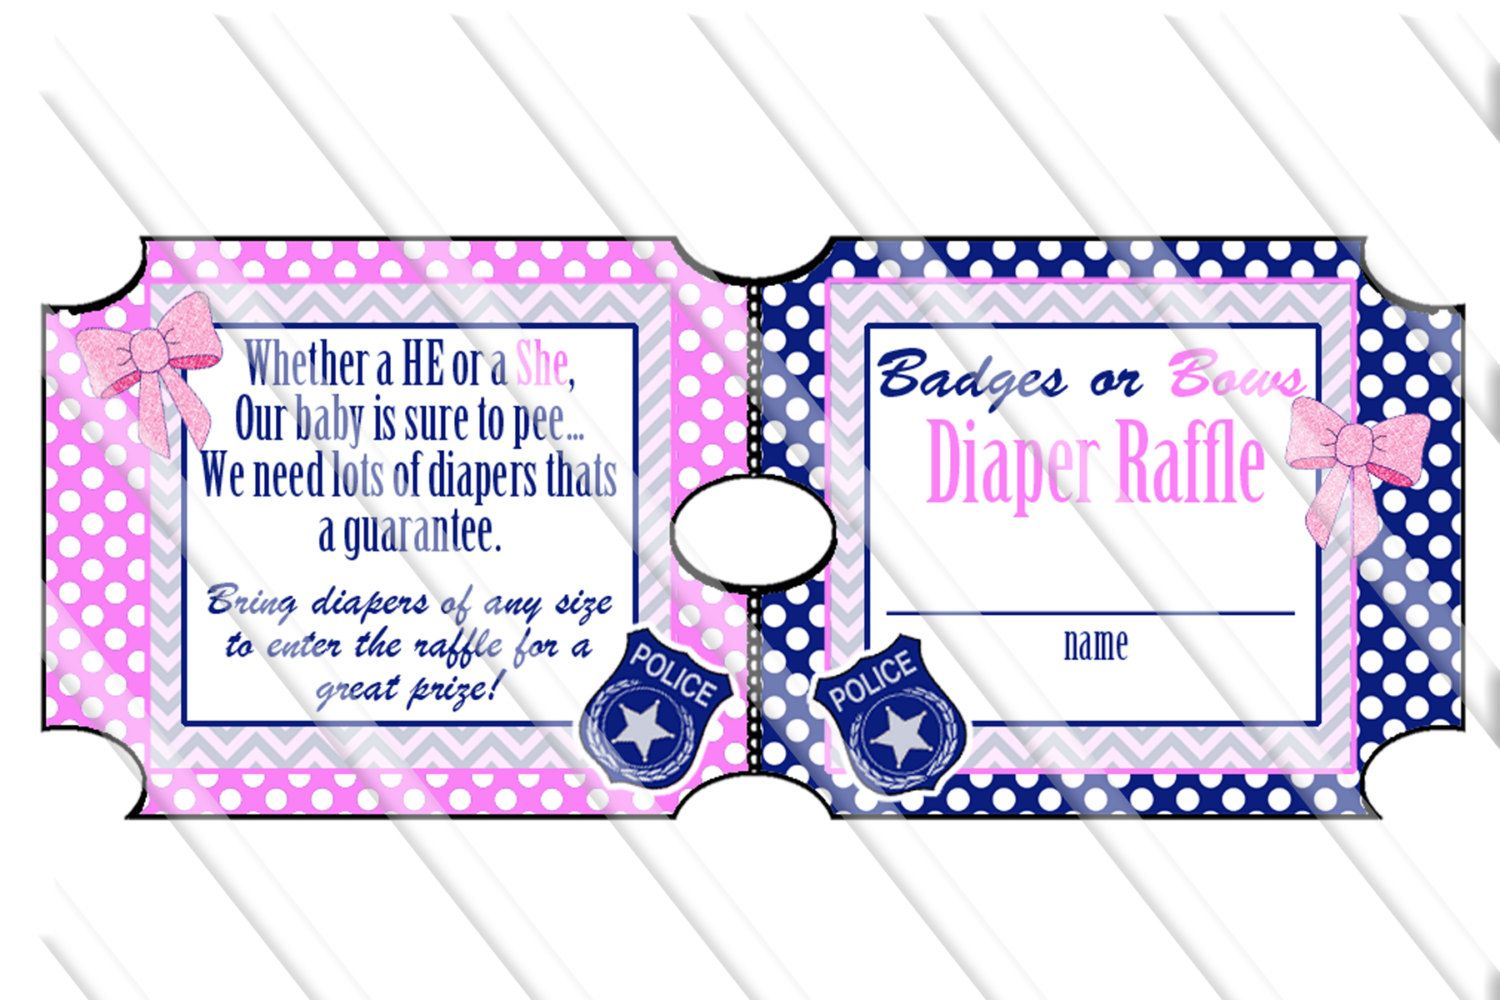 badges or bows gender reveal party diaper raffle ticket printable